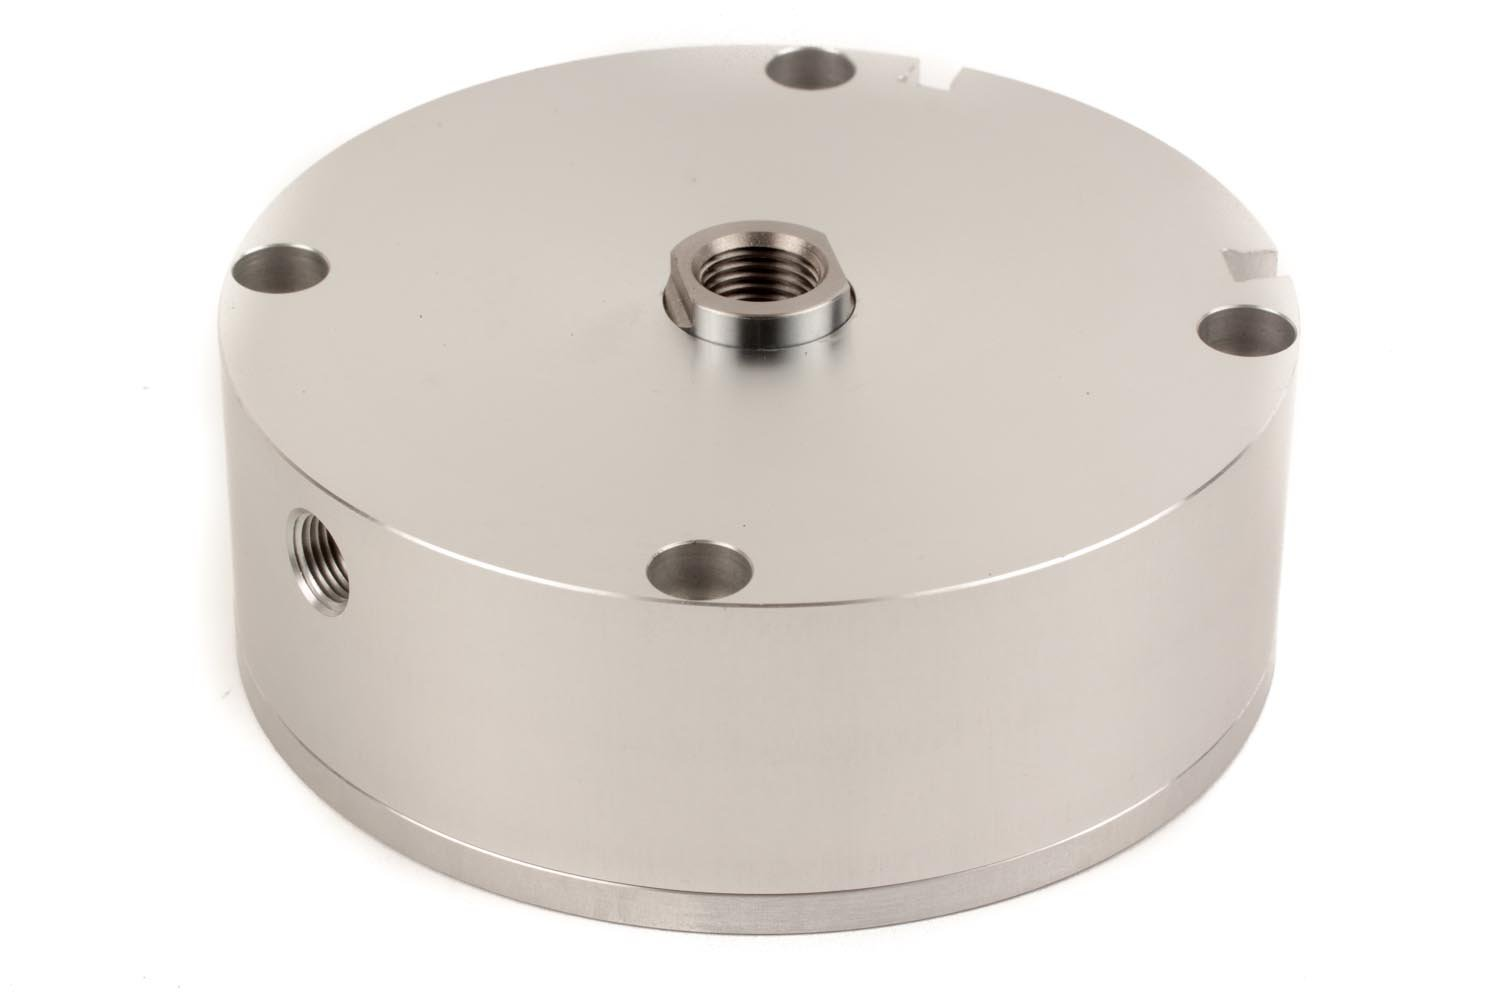 Fabco-Air AA-721-X-E Original Pancake Cylinder, Double Acting, Maximum Pressure of 250 PSI, Switch Ready with Magnet, 3'' Bore Diameter x 1/4'' Stroke